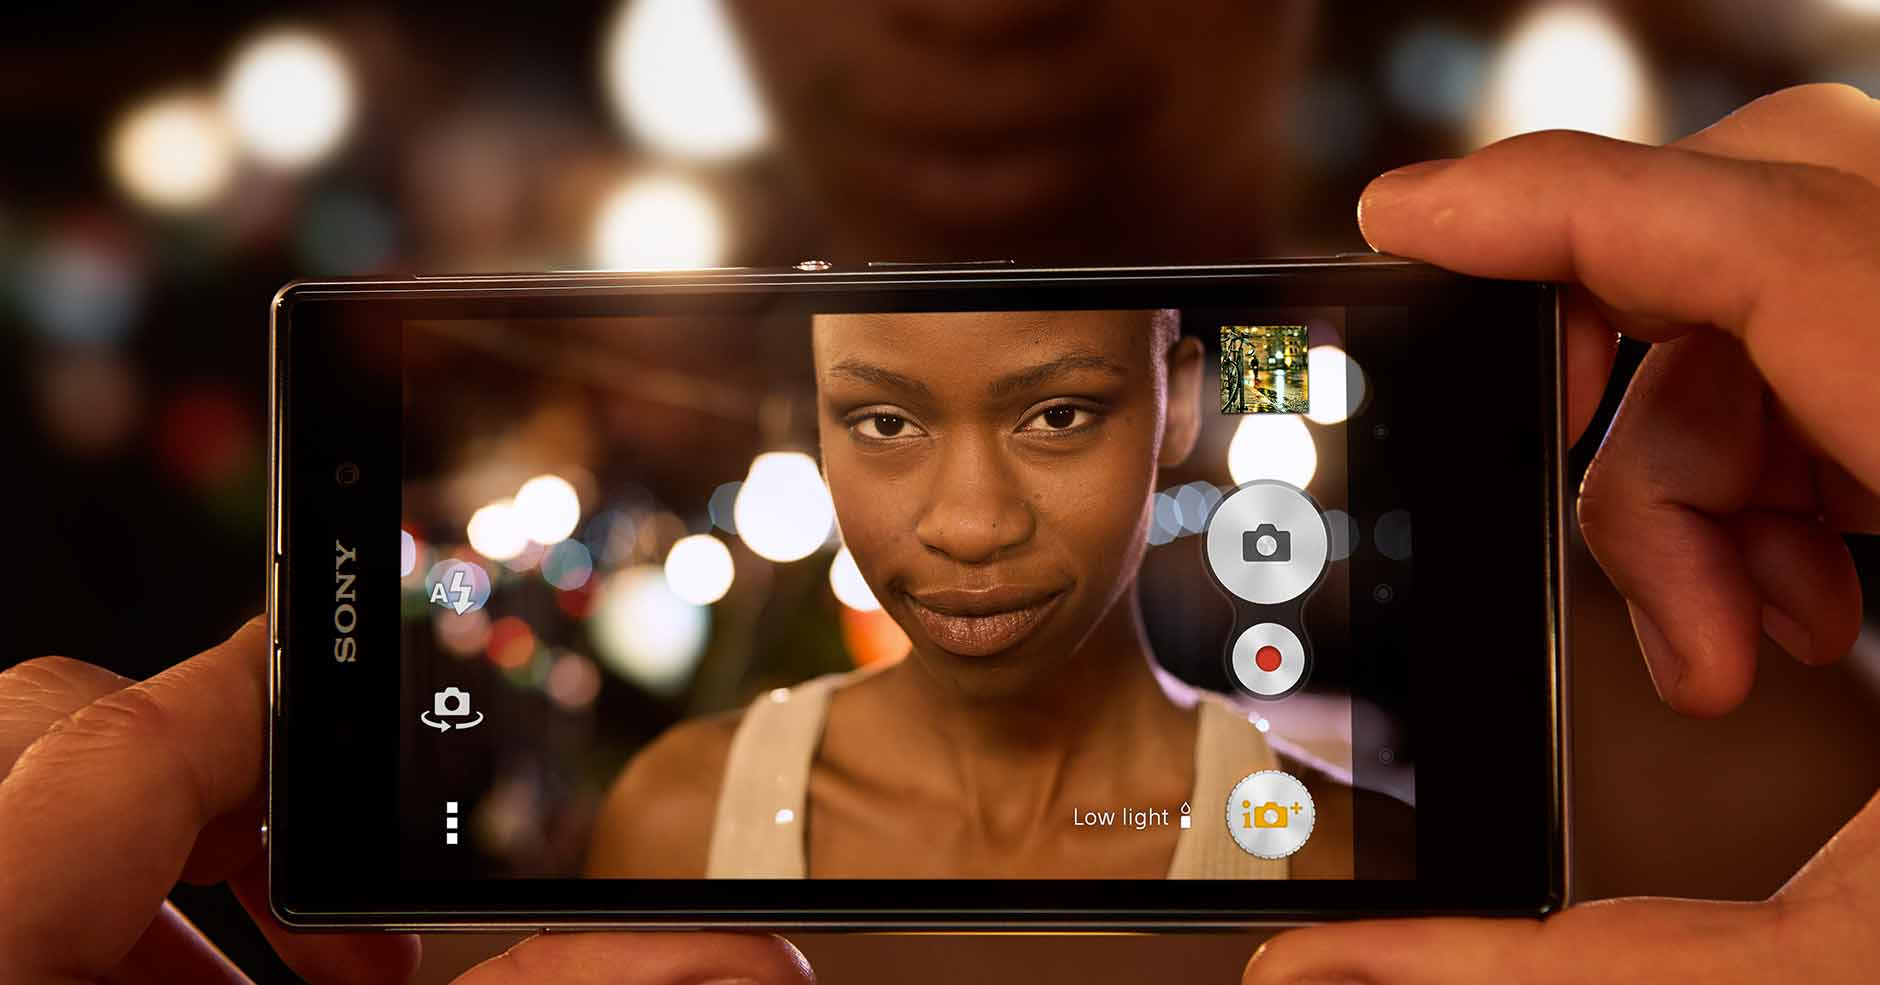 Highly detailed shots in any light with Sony's best camera phone, the Xperia Z1.